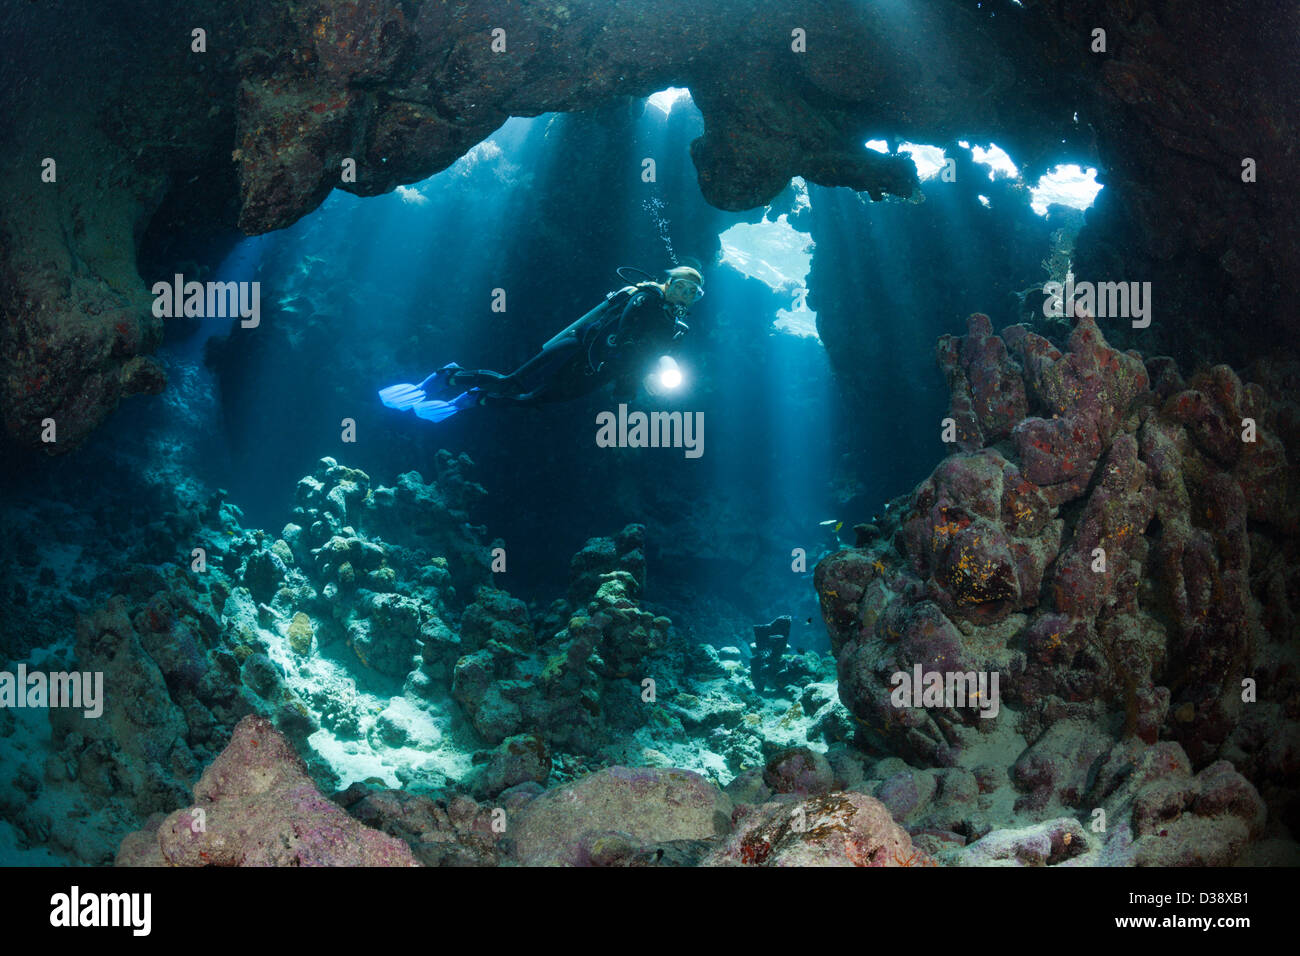 Scuba Diver inside Cave, Cave Reef, Red Sea, Egypt - Stock Image